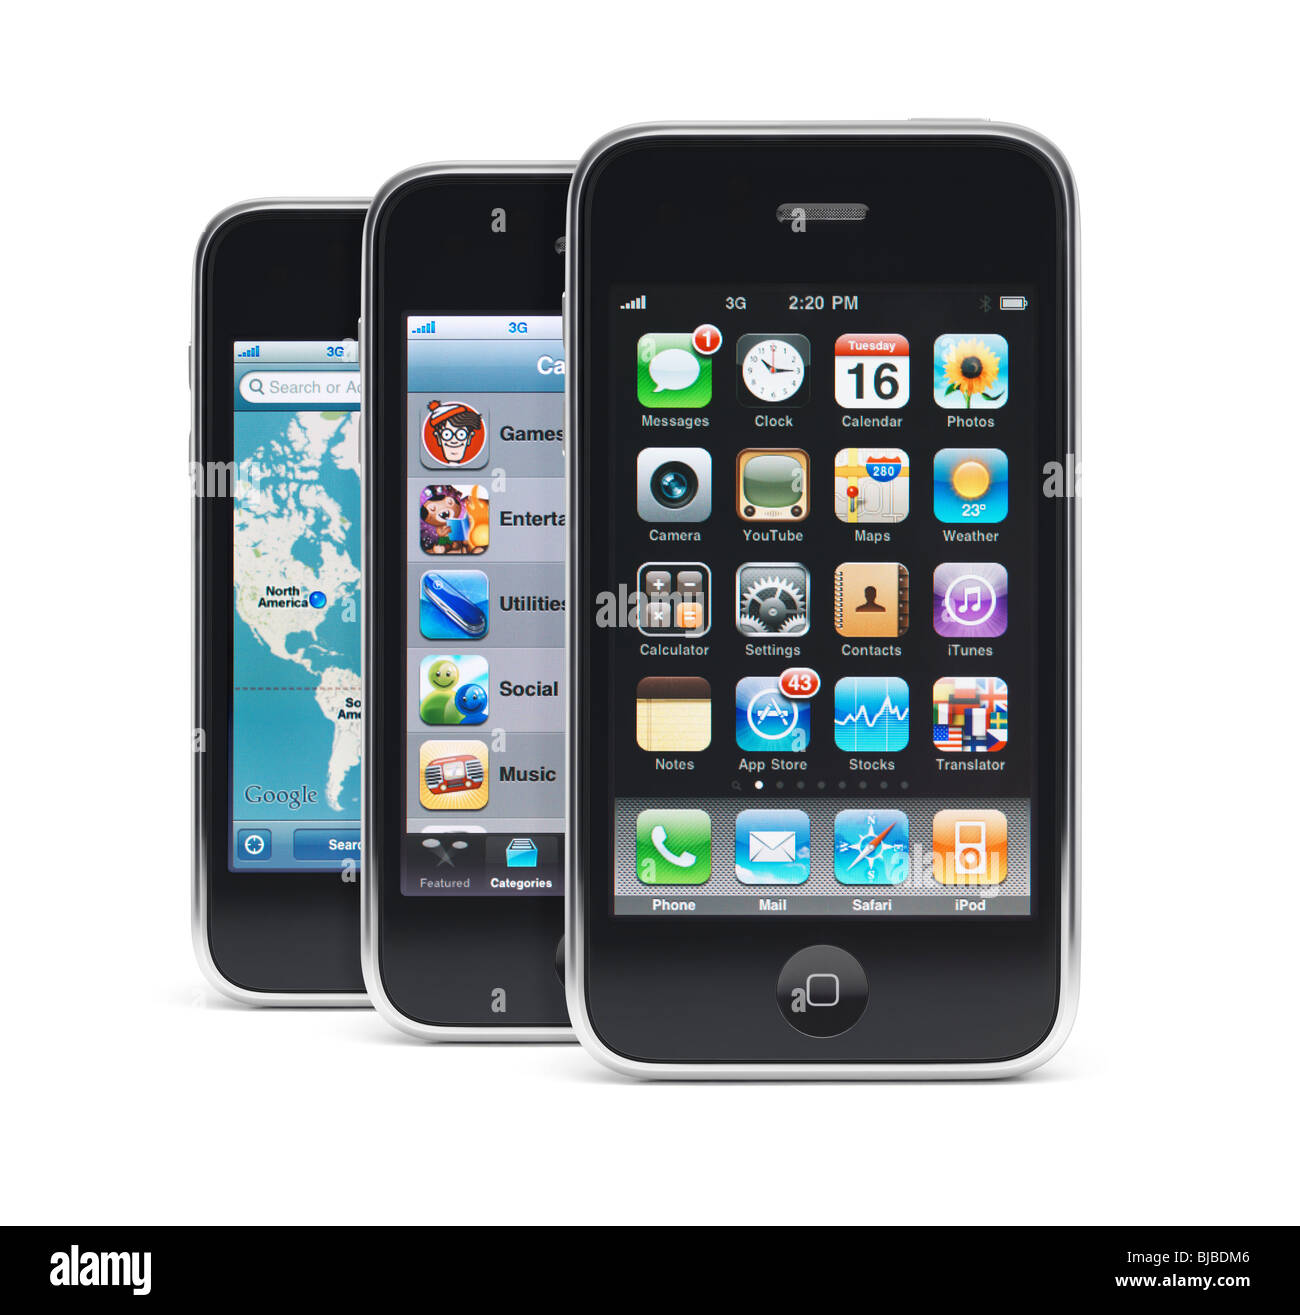 Three Apple IPhone 3Gs 3G Smartphones Displaying Different App Menus On Their Screens Isolated White Background